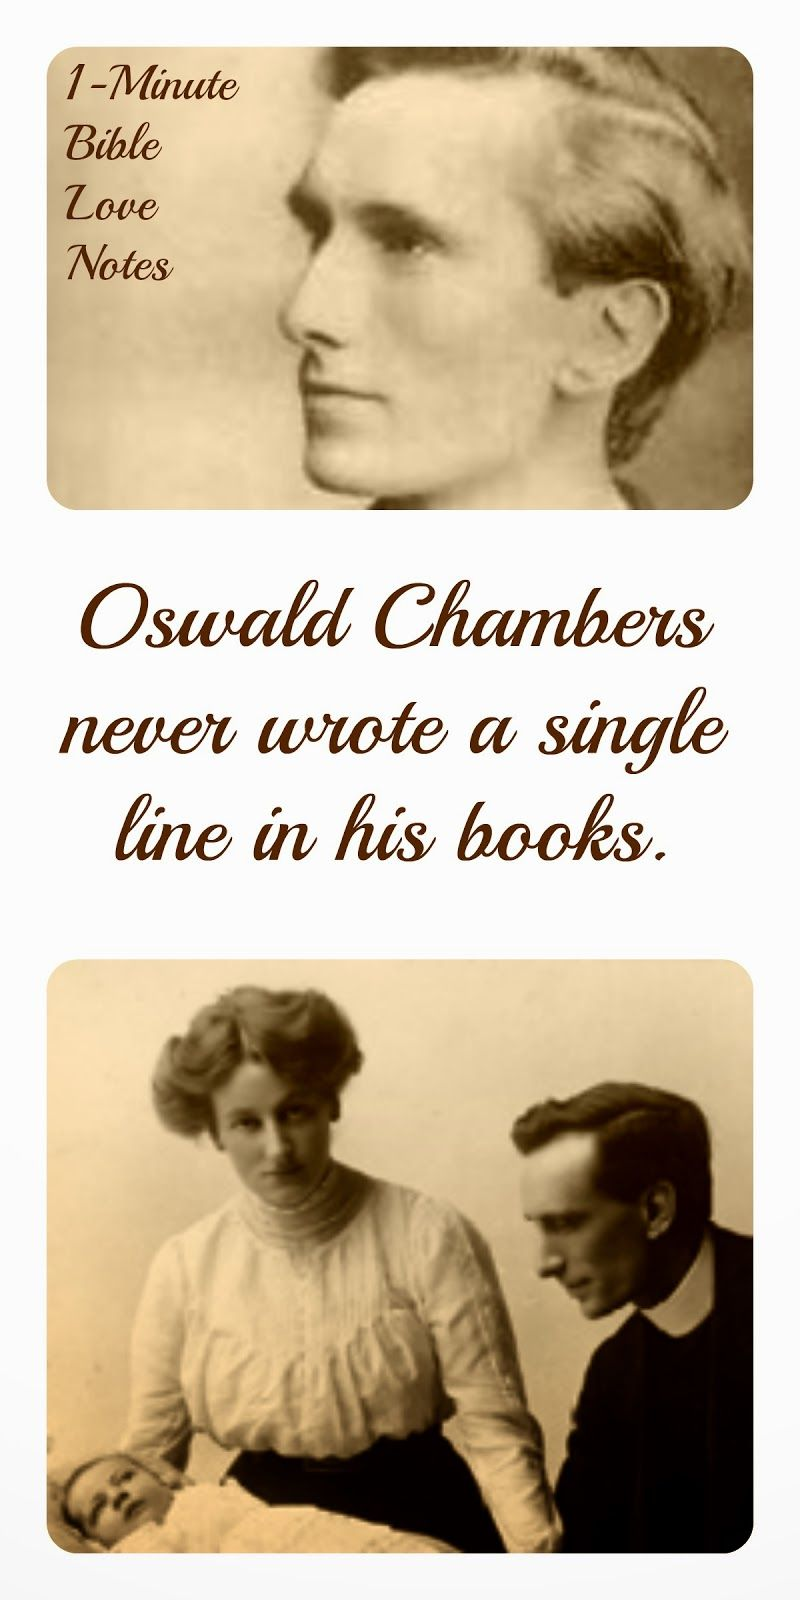 Oswald chambers never wrote a single line in his books